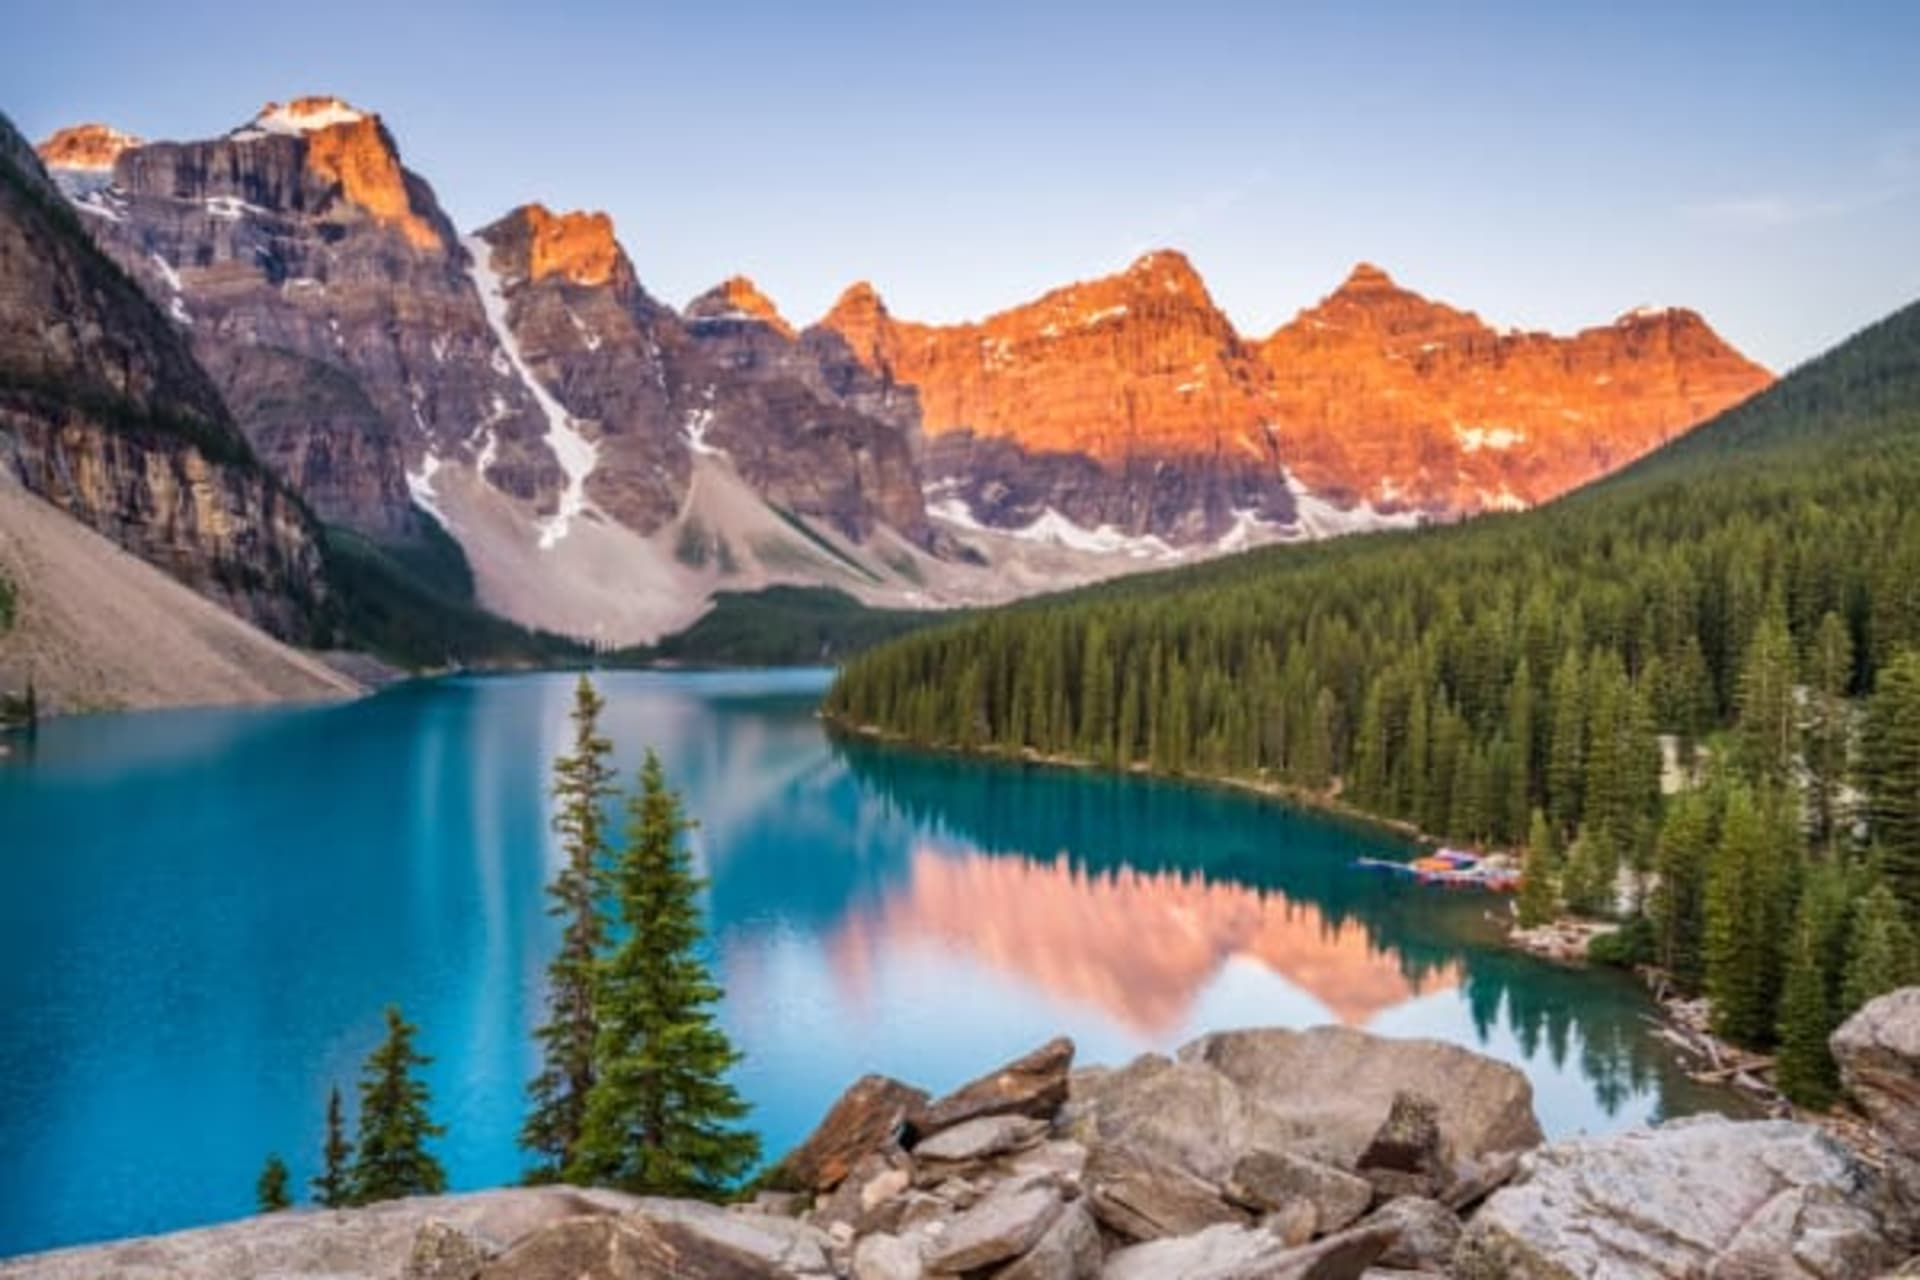 Banff - A youthful walk in the Canadian Rockies